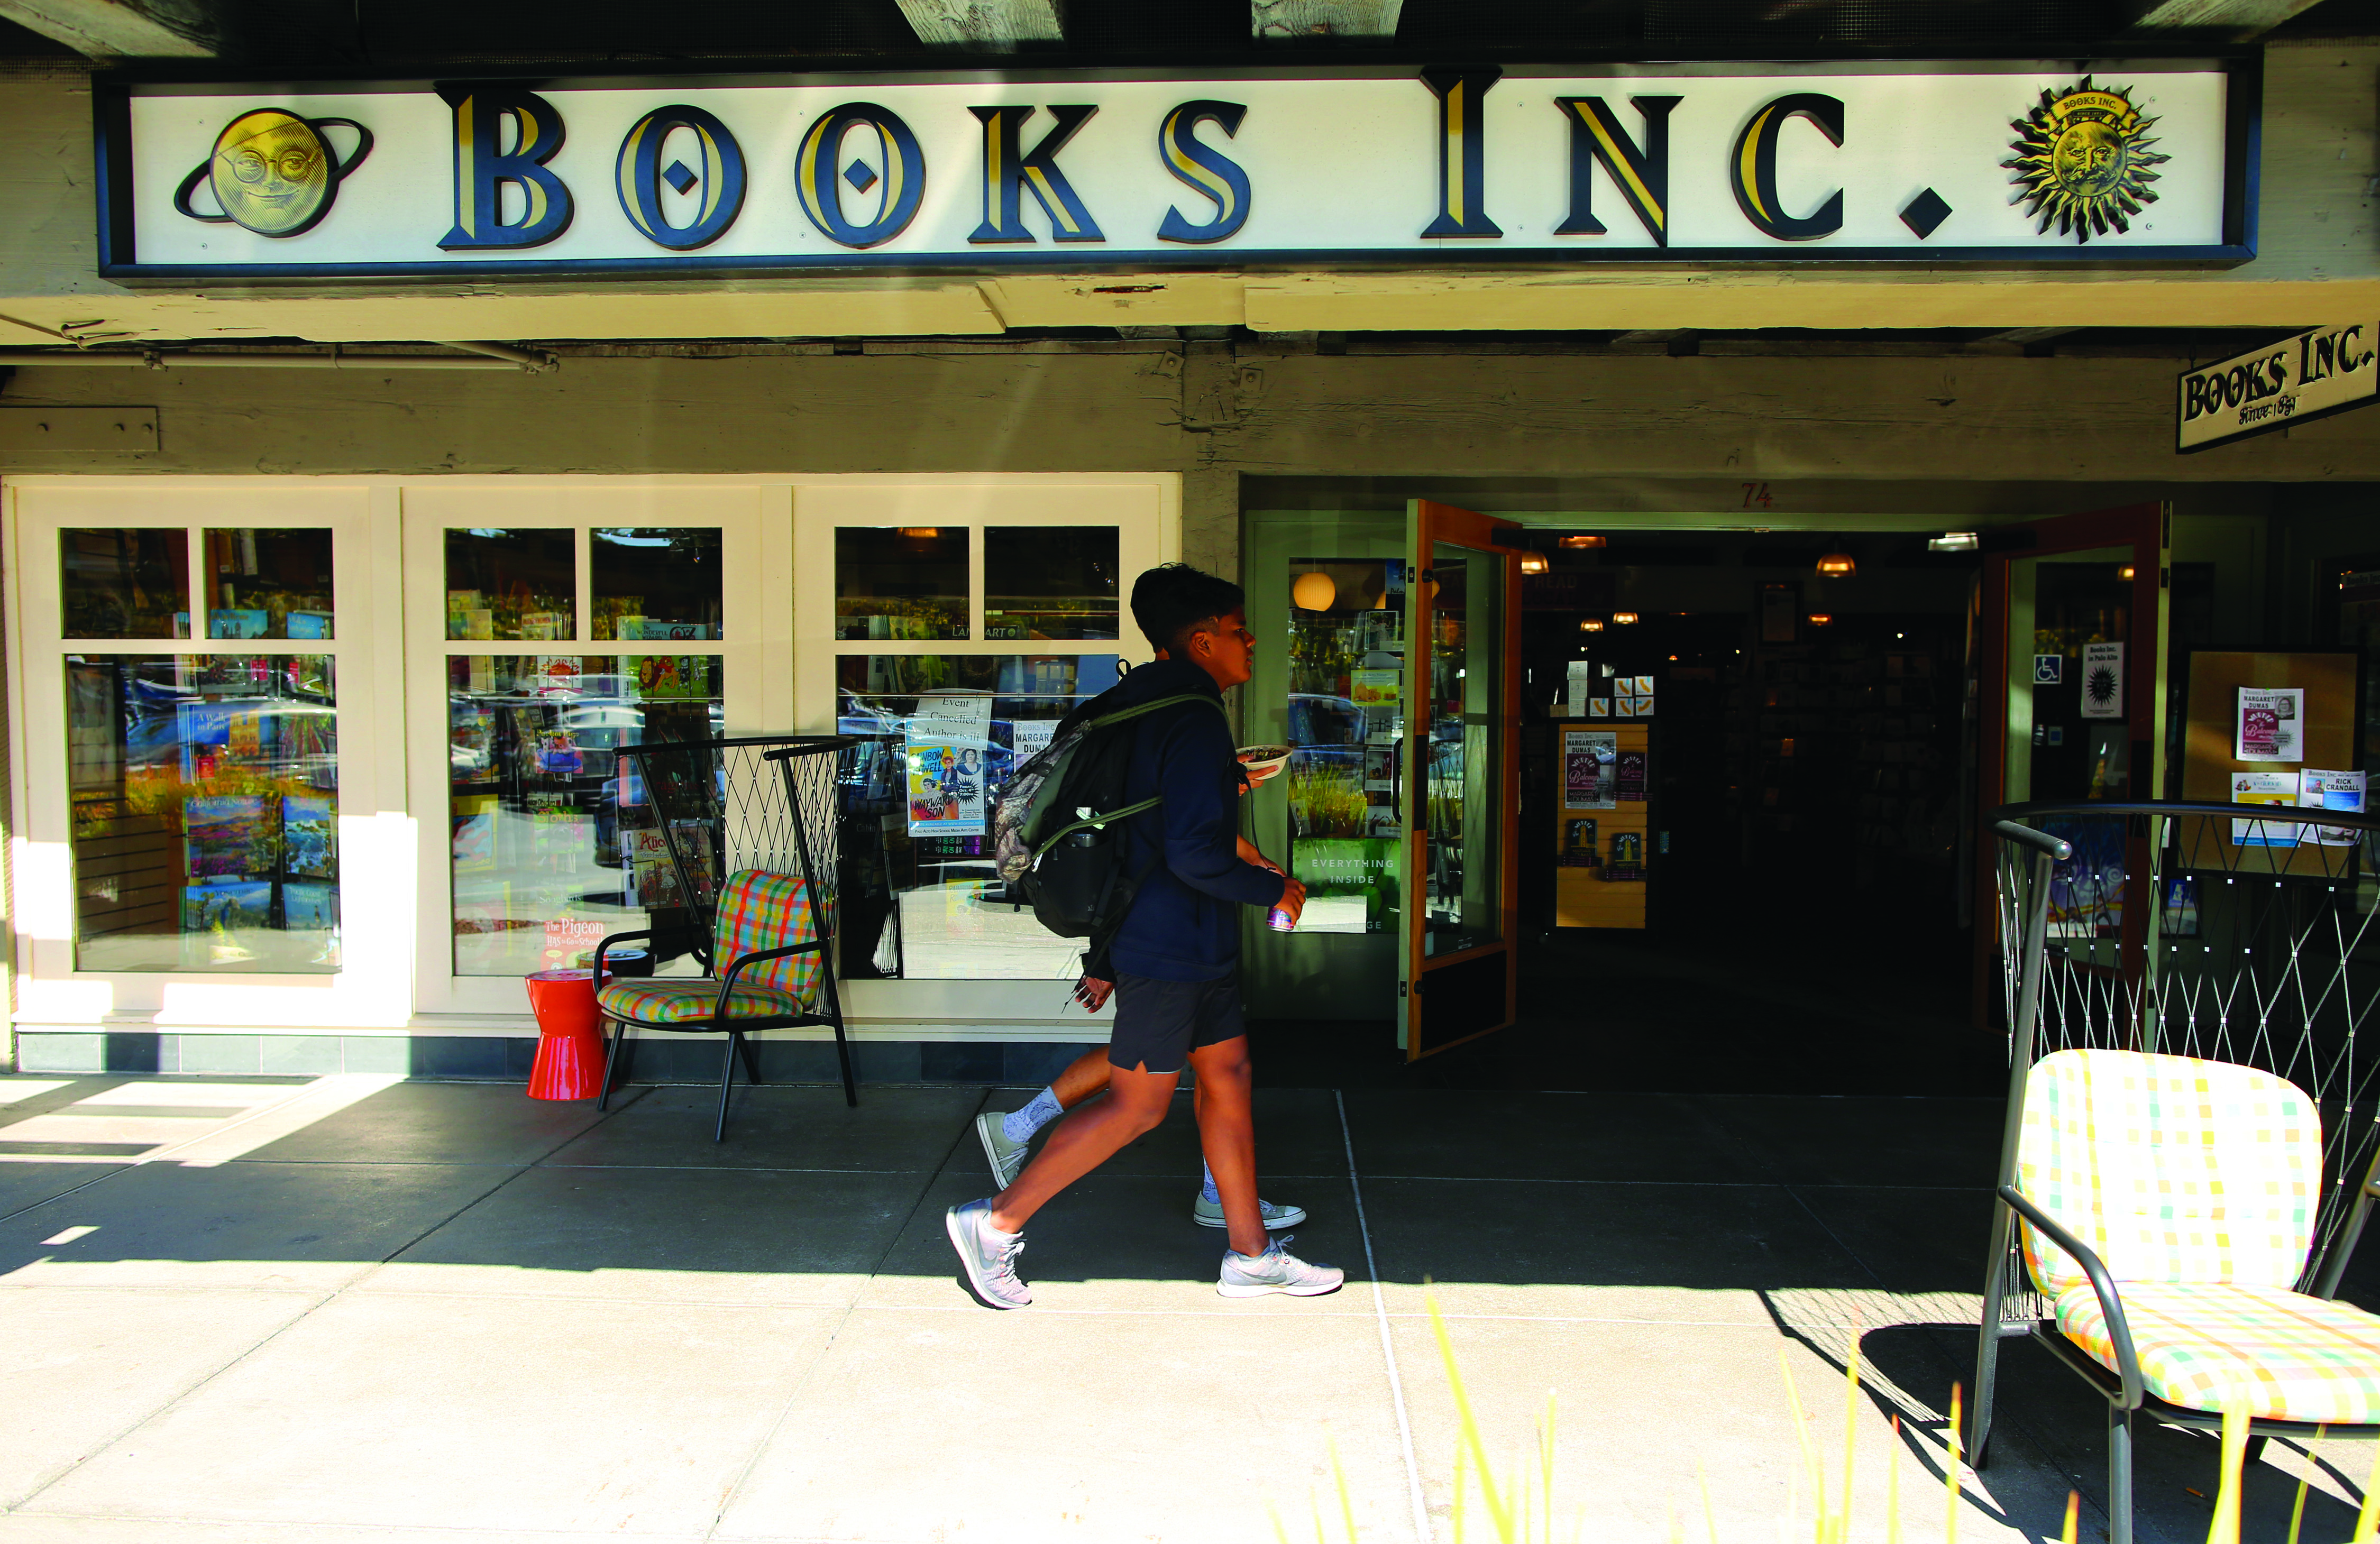 Independent bookseller Books Inc. moved into Town & Country Village shopping center in early 2008 after 50 years in the Stanford Shopping Center. Photo by Sammy Dallal.